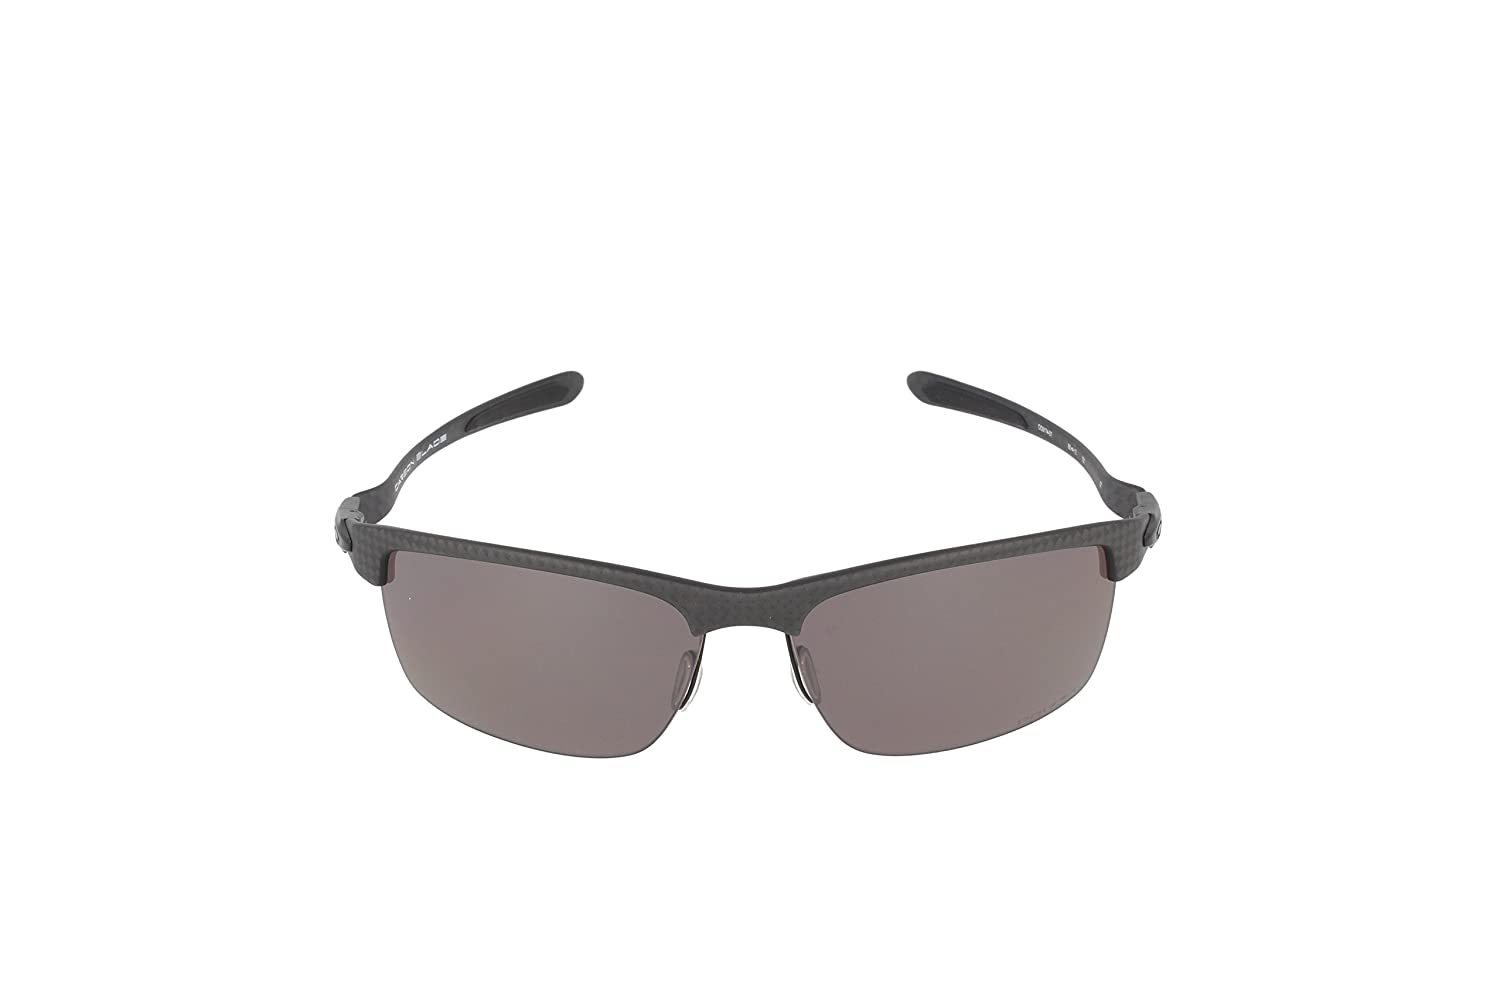 a068bebe4e Amazon.com  Oakley Men s Carbon Blade Sunglasses